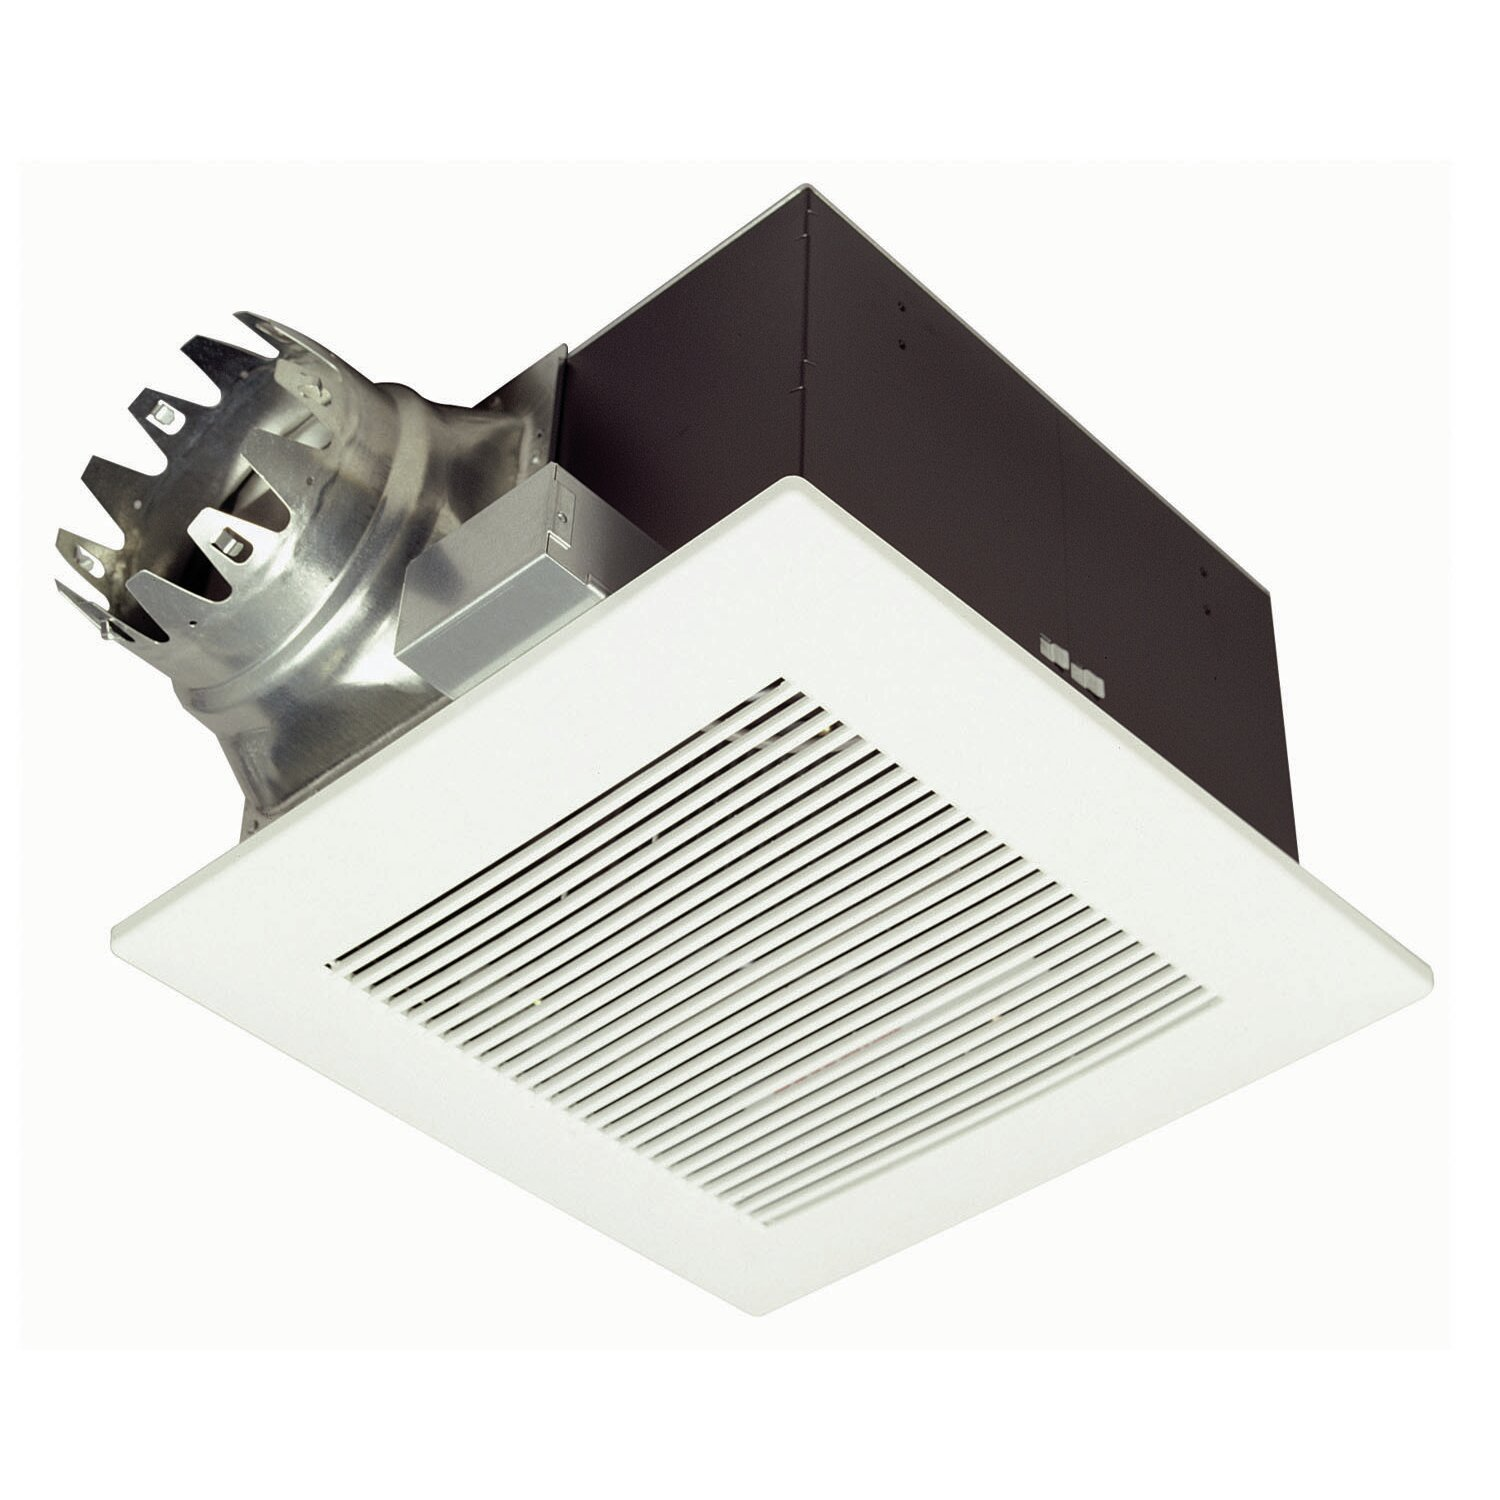 WhisperCeiling 190 CFM Energy Star Bathroom Fan. Bathroom Fans You ll Love   Wayfair